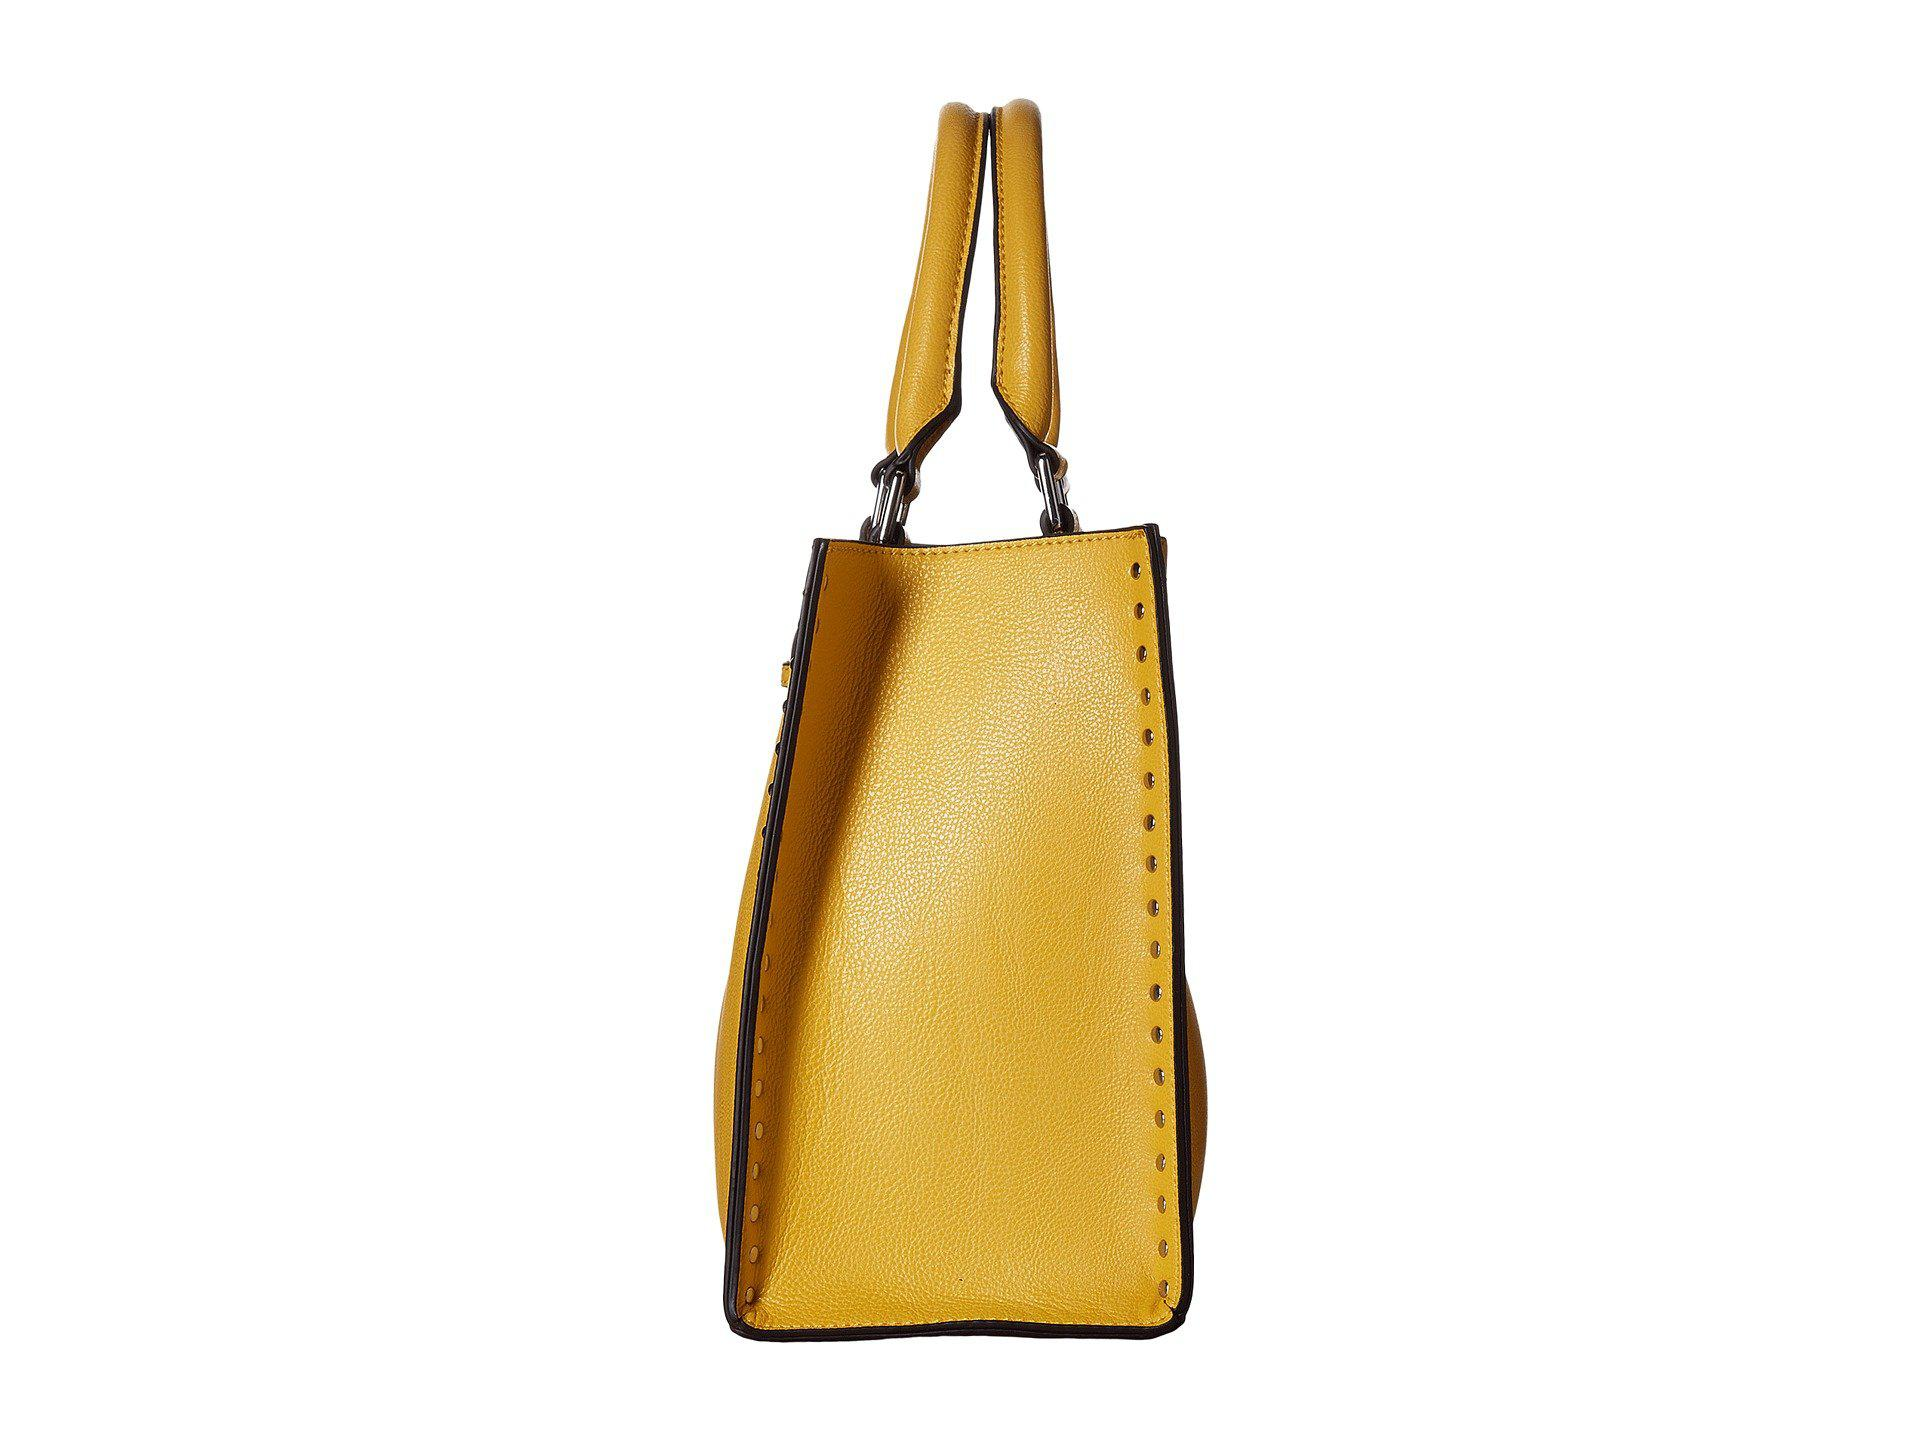 2fa2817e473 Gallery. Previously sold at: Zappos · Women's Novelty Bags Women's Calvin  Klein Crossbody